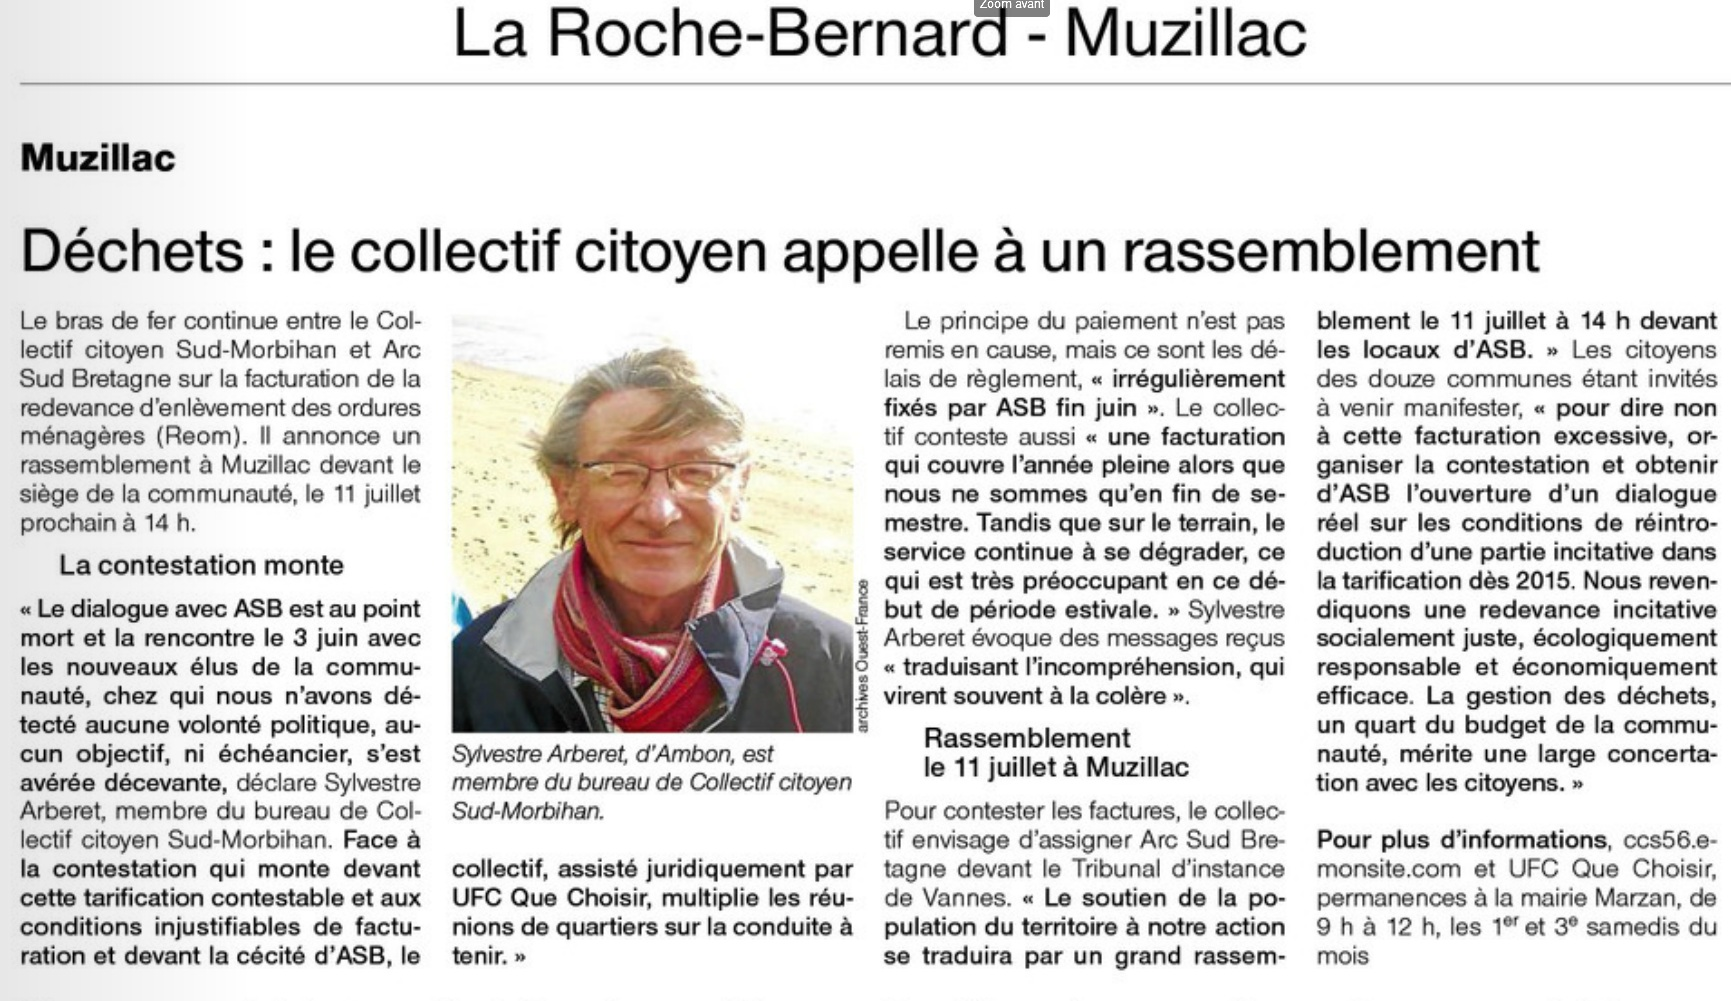 2014 06 24 of ccsm appelle a rassemblement